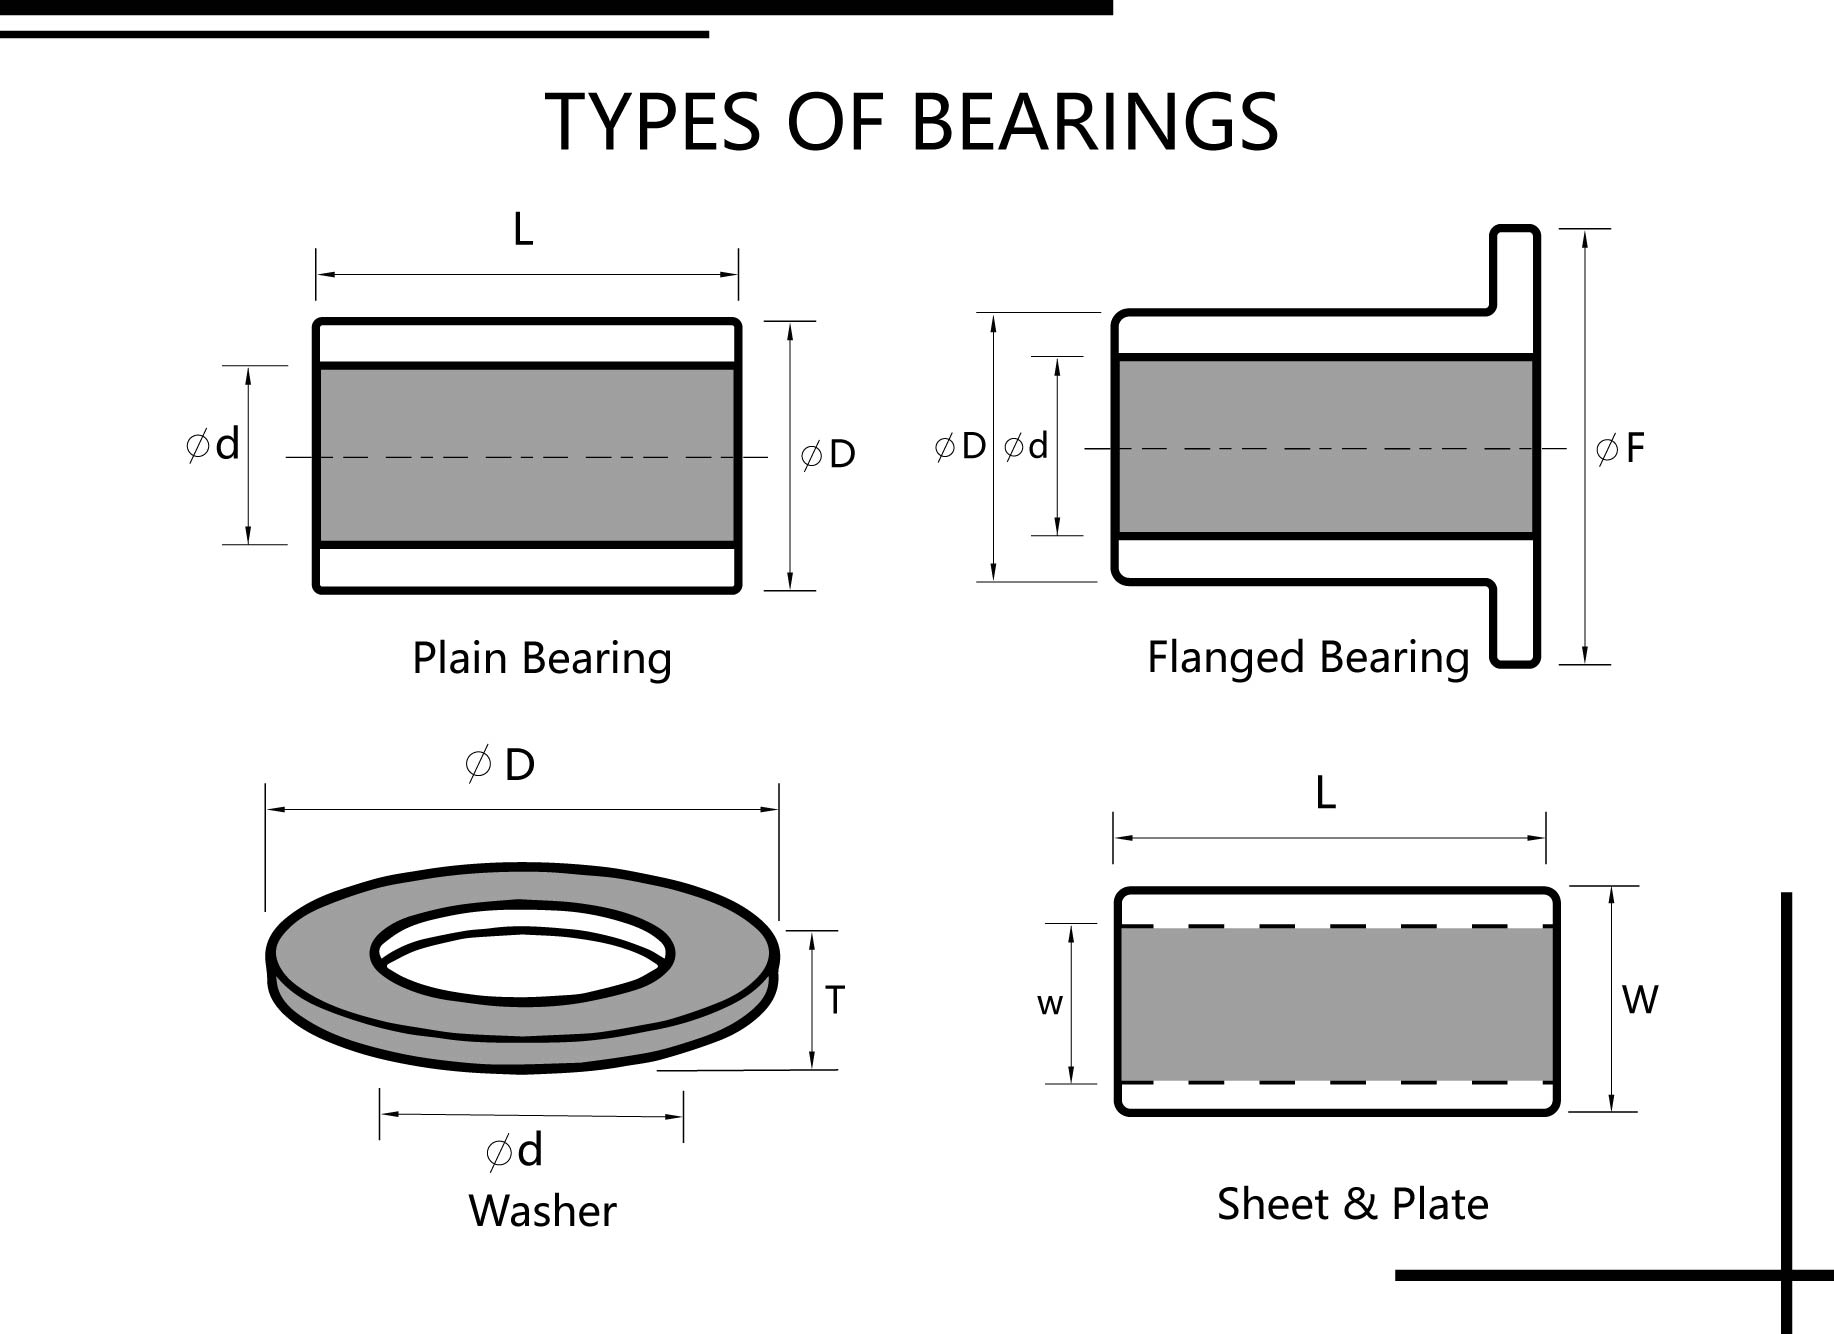 TYPE OF BUSHING BEARINGS